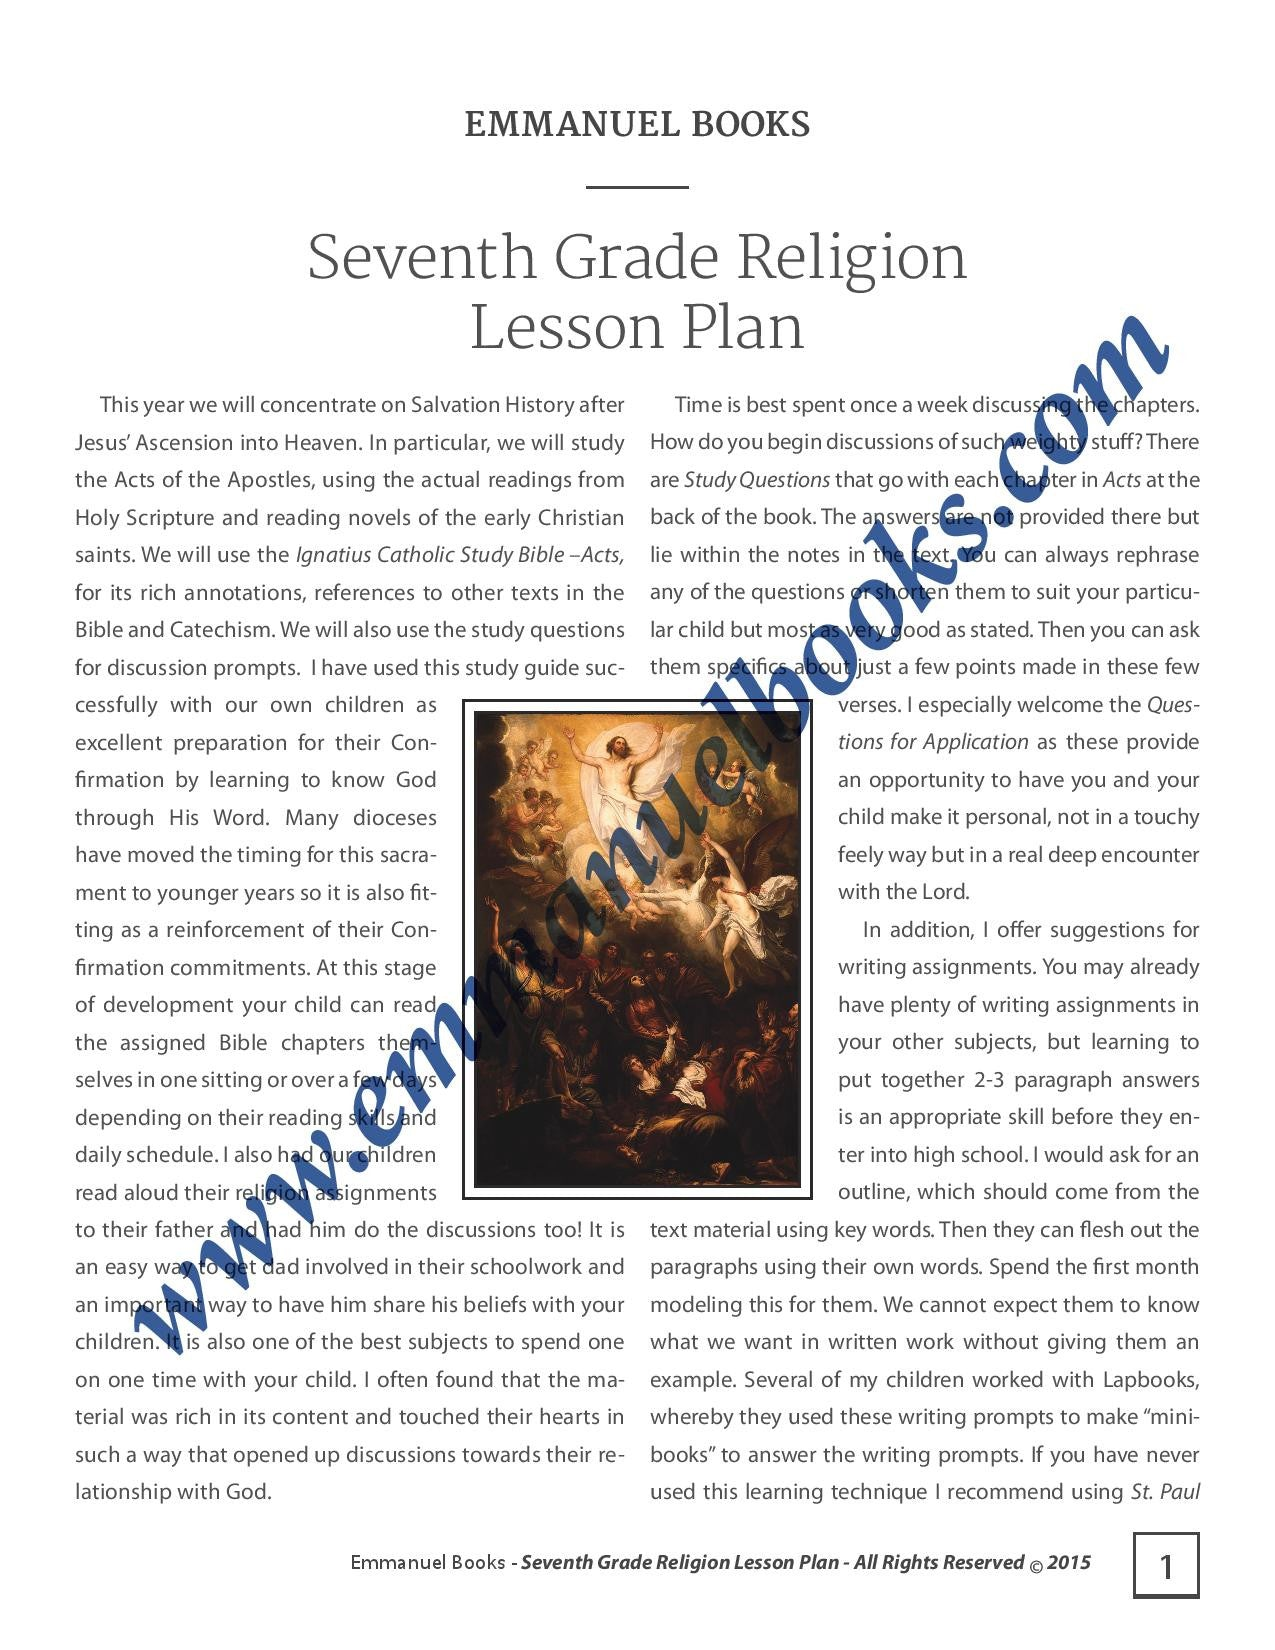 Emmanuel Books Seventh Grade Religion Lesson Plan